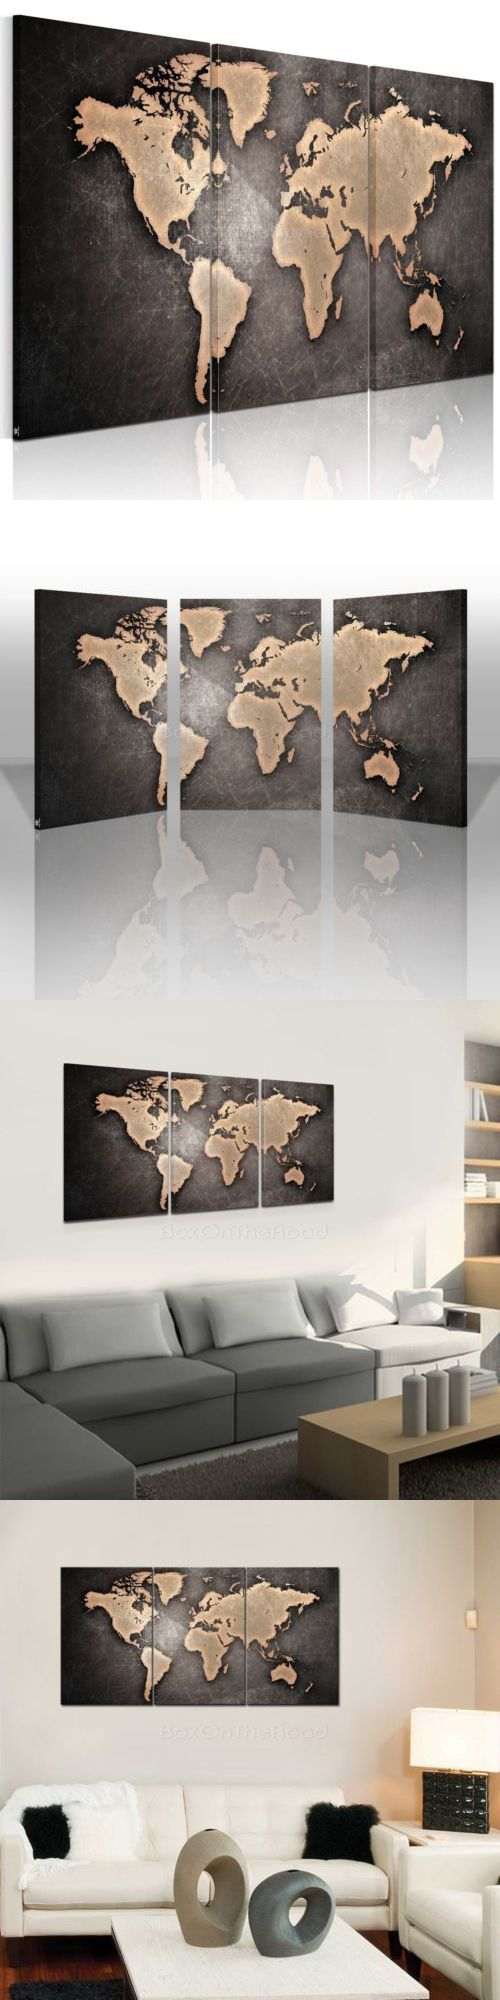 Arts And Crafts: Us Ship World Map Framed Picture Hd Canvas Print Wall Art Painting Ready To Hang -> BUY IT NOW ONLY: $40.84 on eBay!